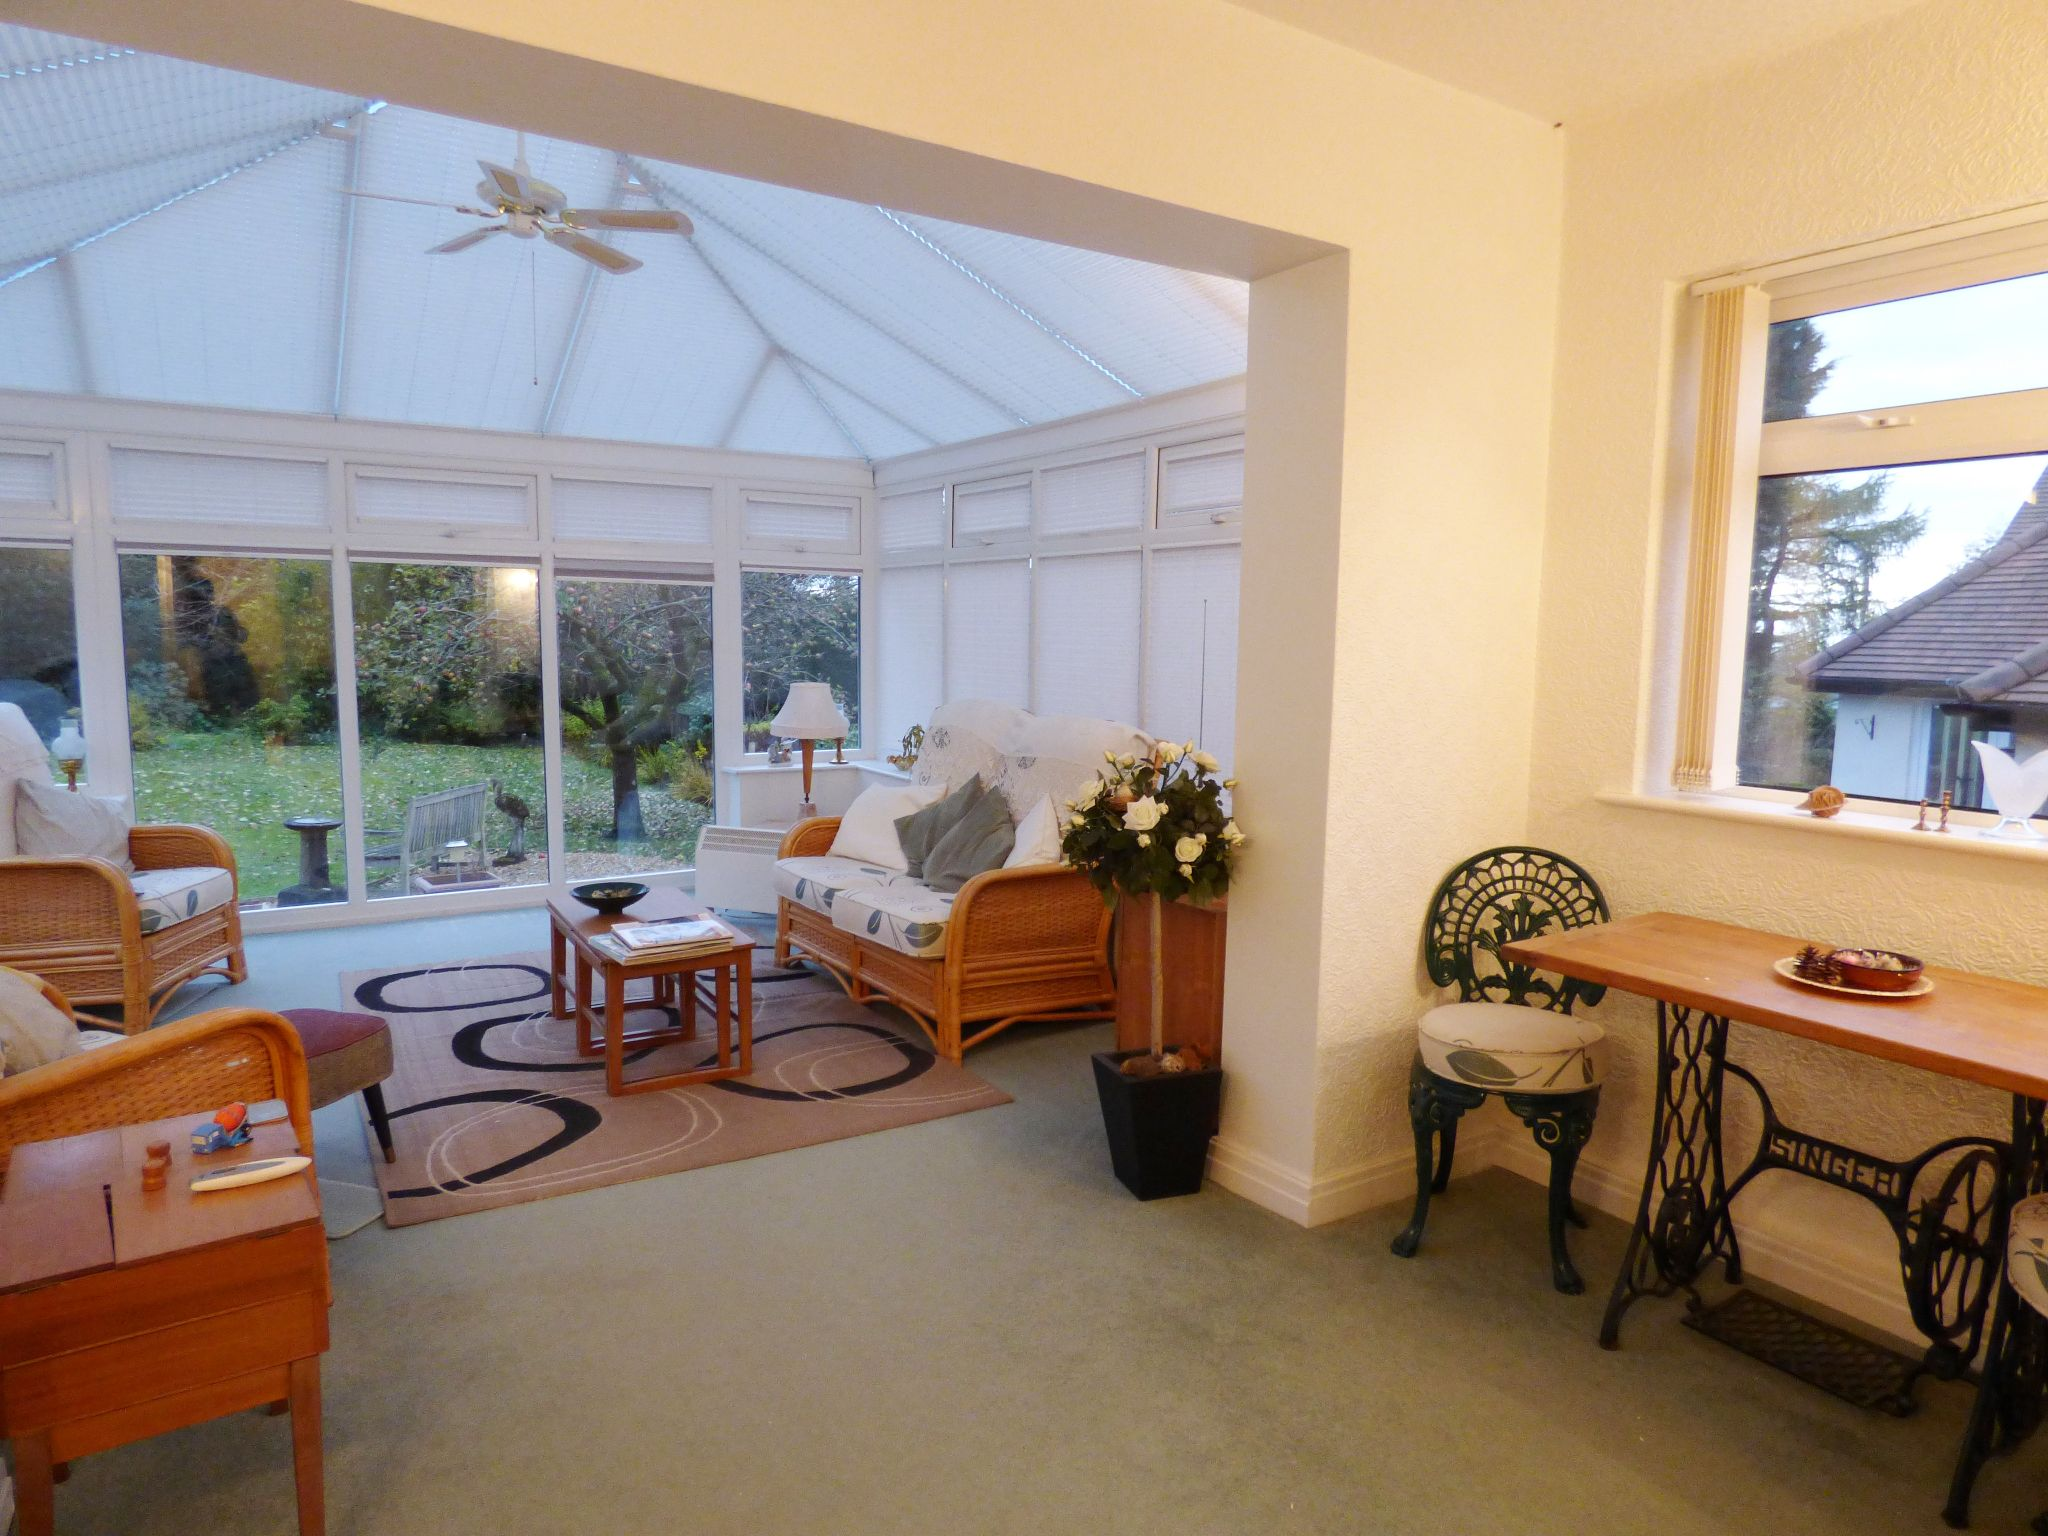 3 Bedroom Detached Bungalow For Sale - Photograph 7